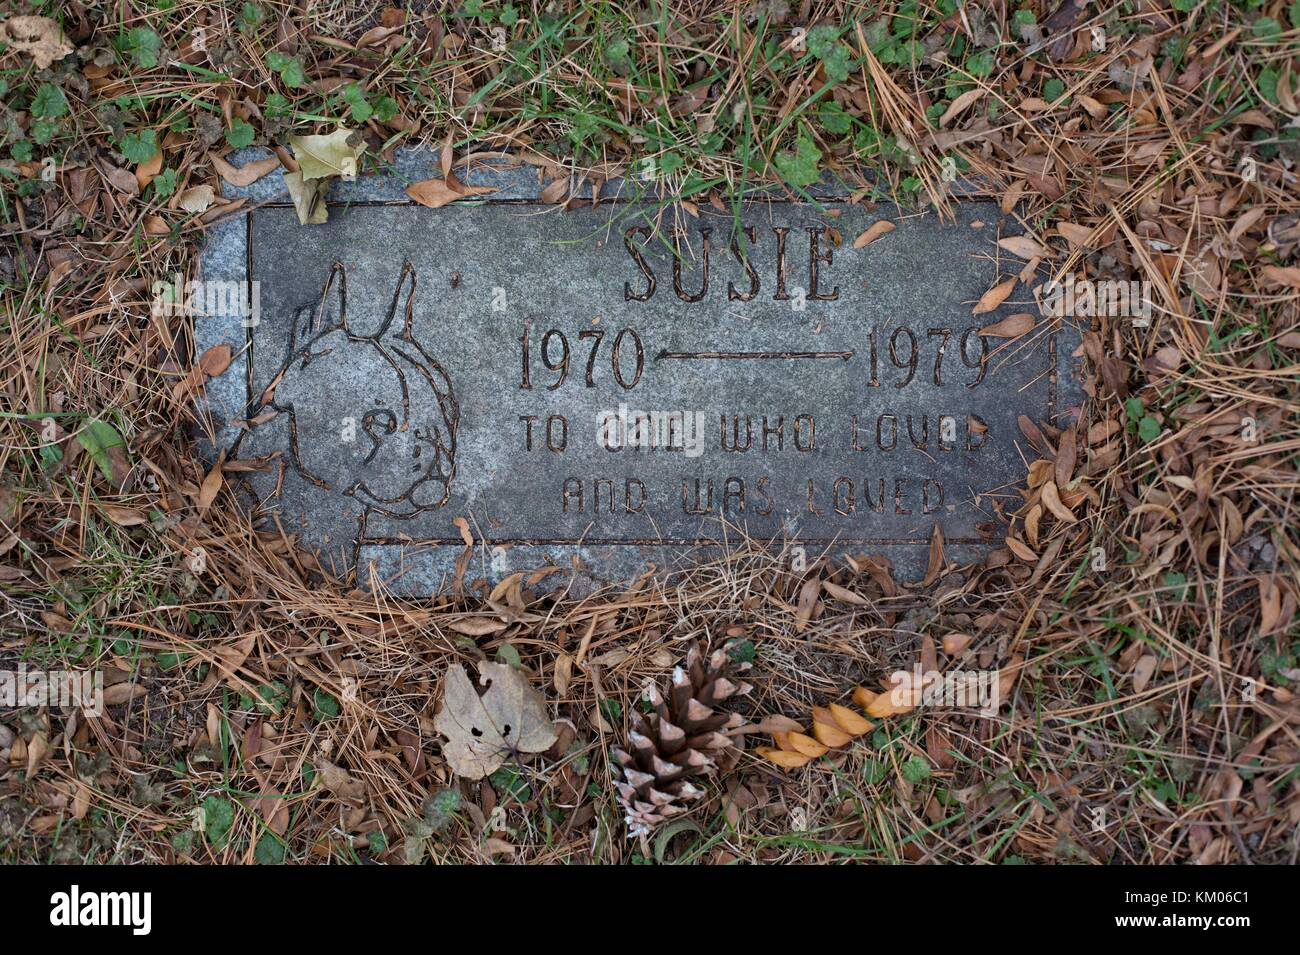 A Grave Marker At The Historical Memorial Pet Cemetery In